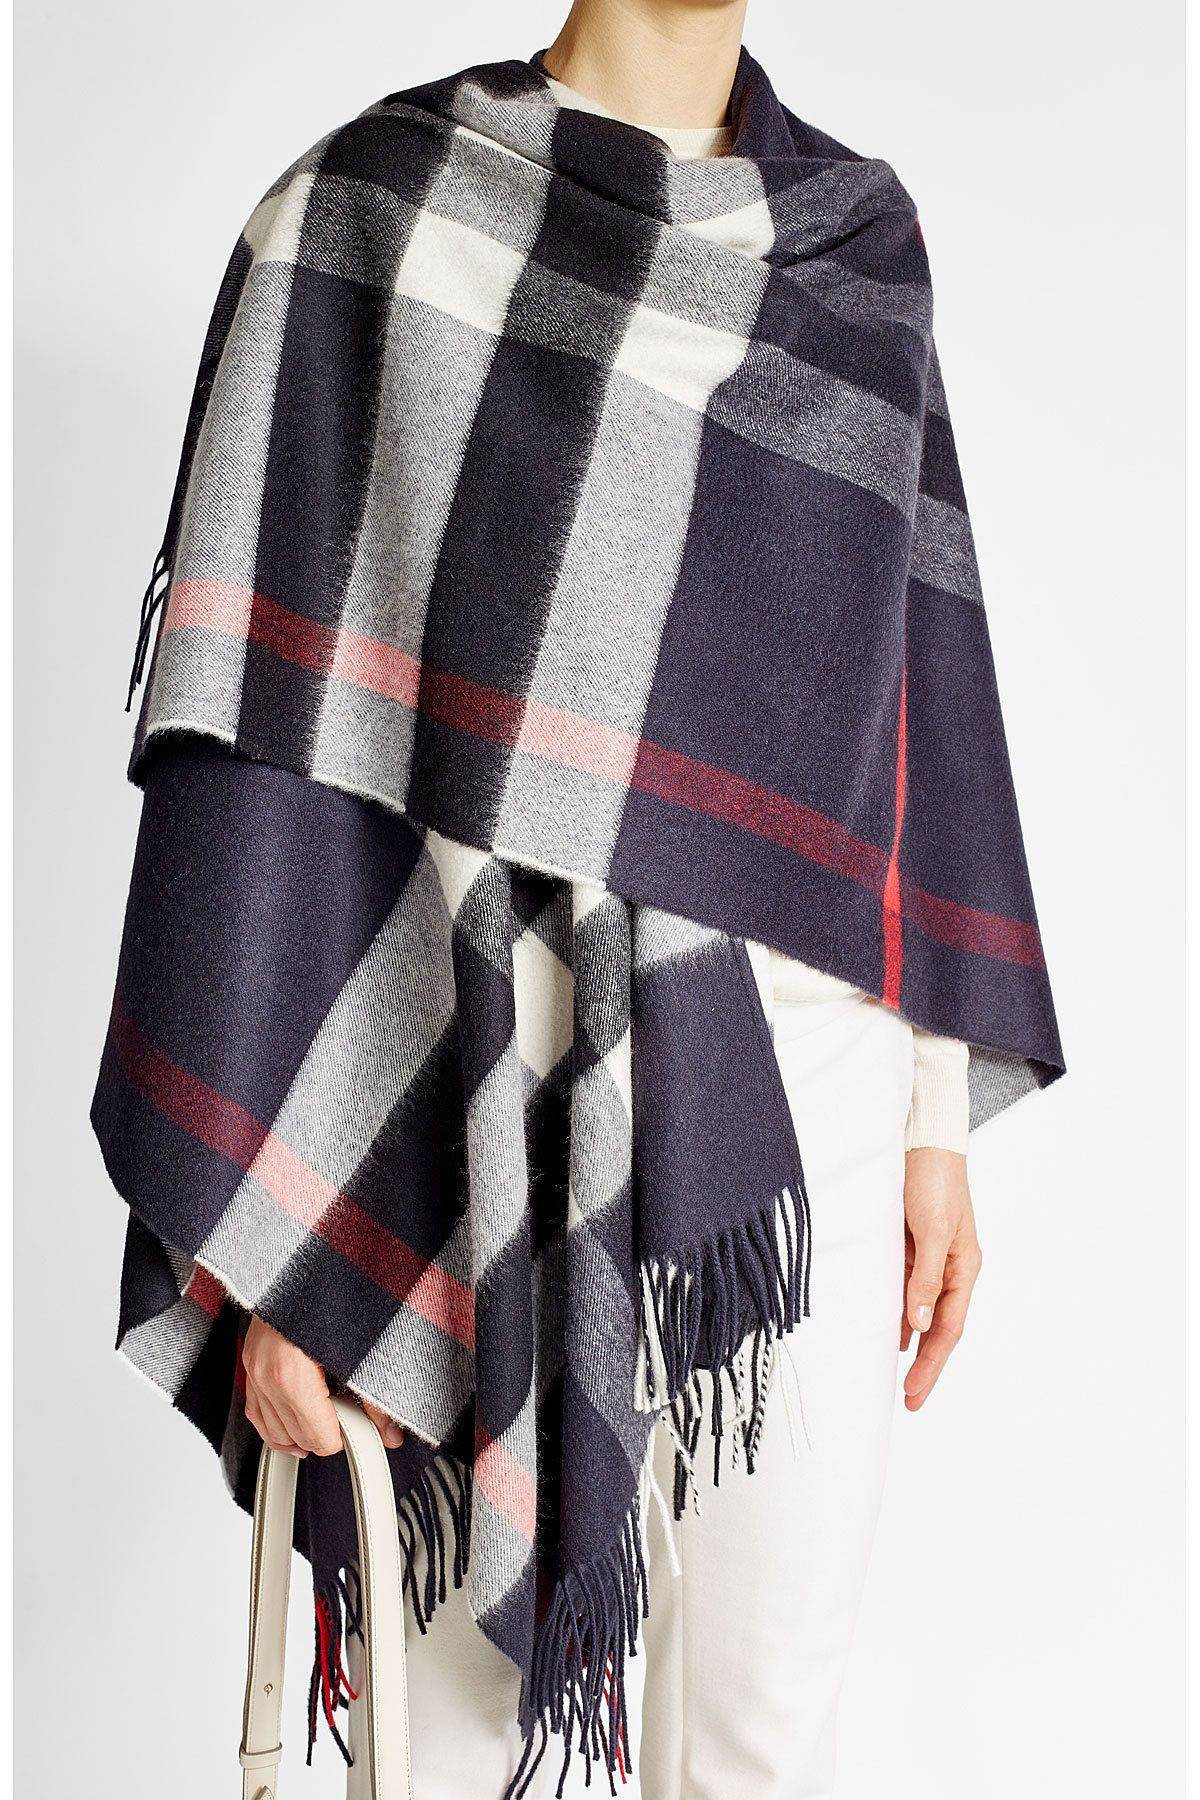 Printed Poncho with Cashmere and Merino Wool - Burberry London   WOMEN   DE  STYLEBOP. 78bffd82892